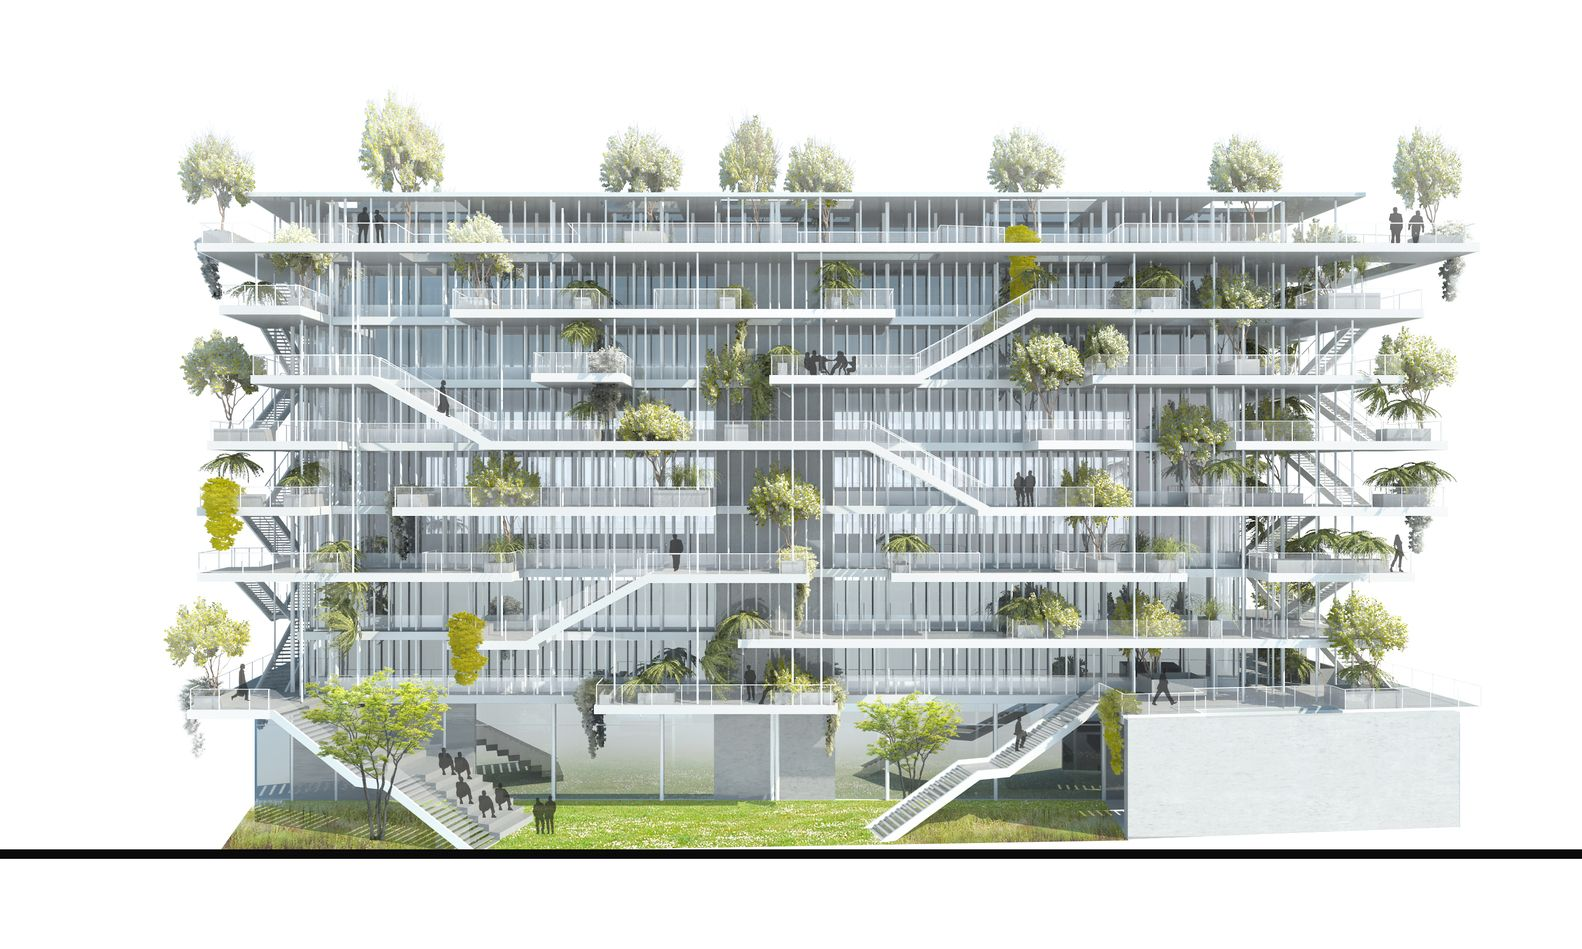 office building design concepts. Gallery - NL*A Reveals Plans For Open-Concept Green Office Building In France Design Concepts O